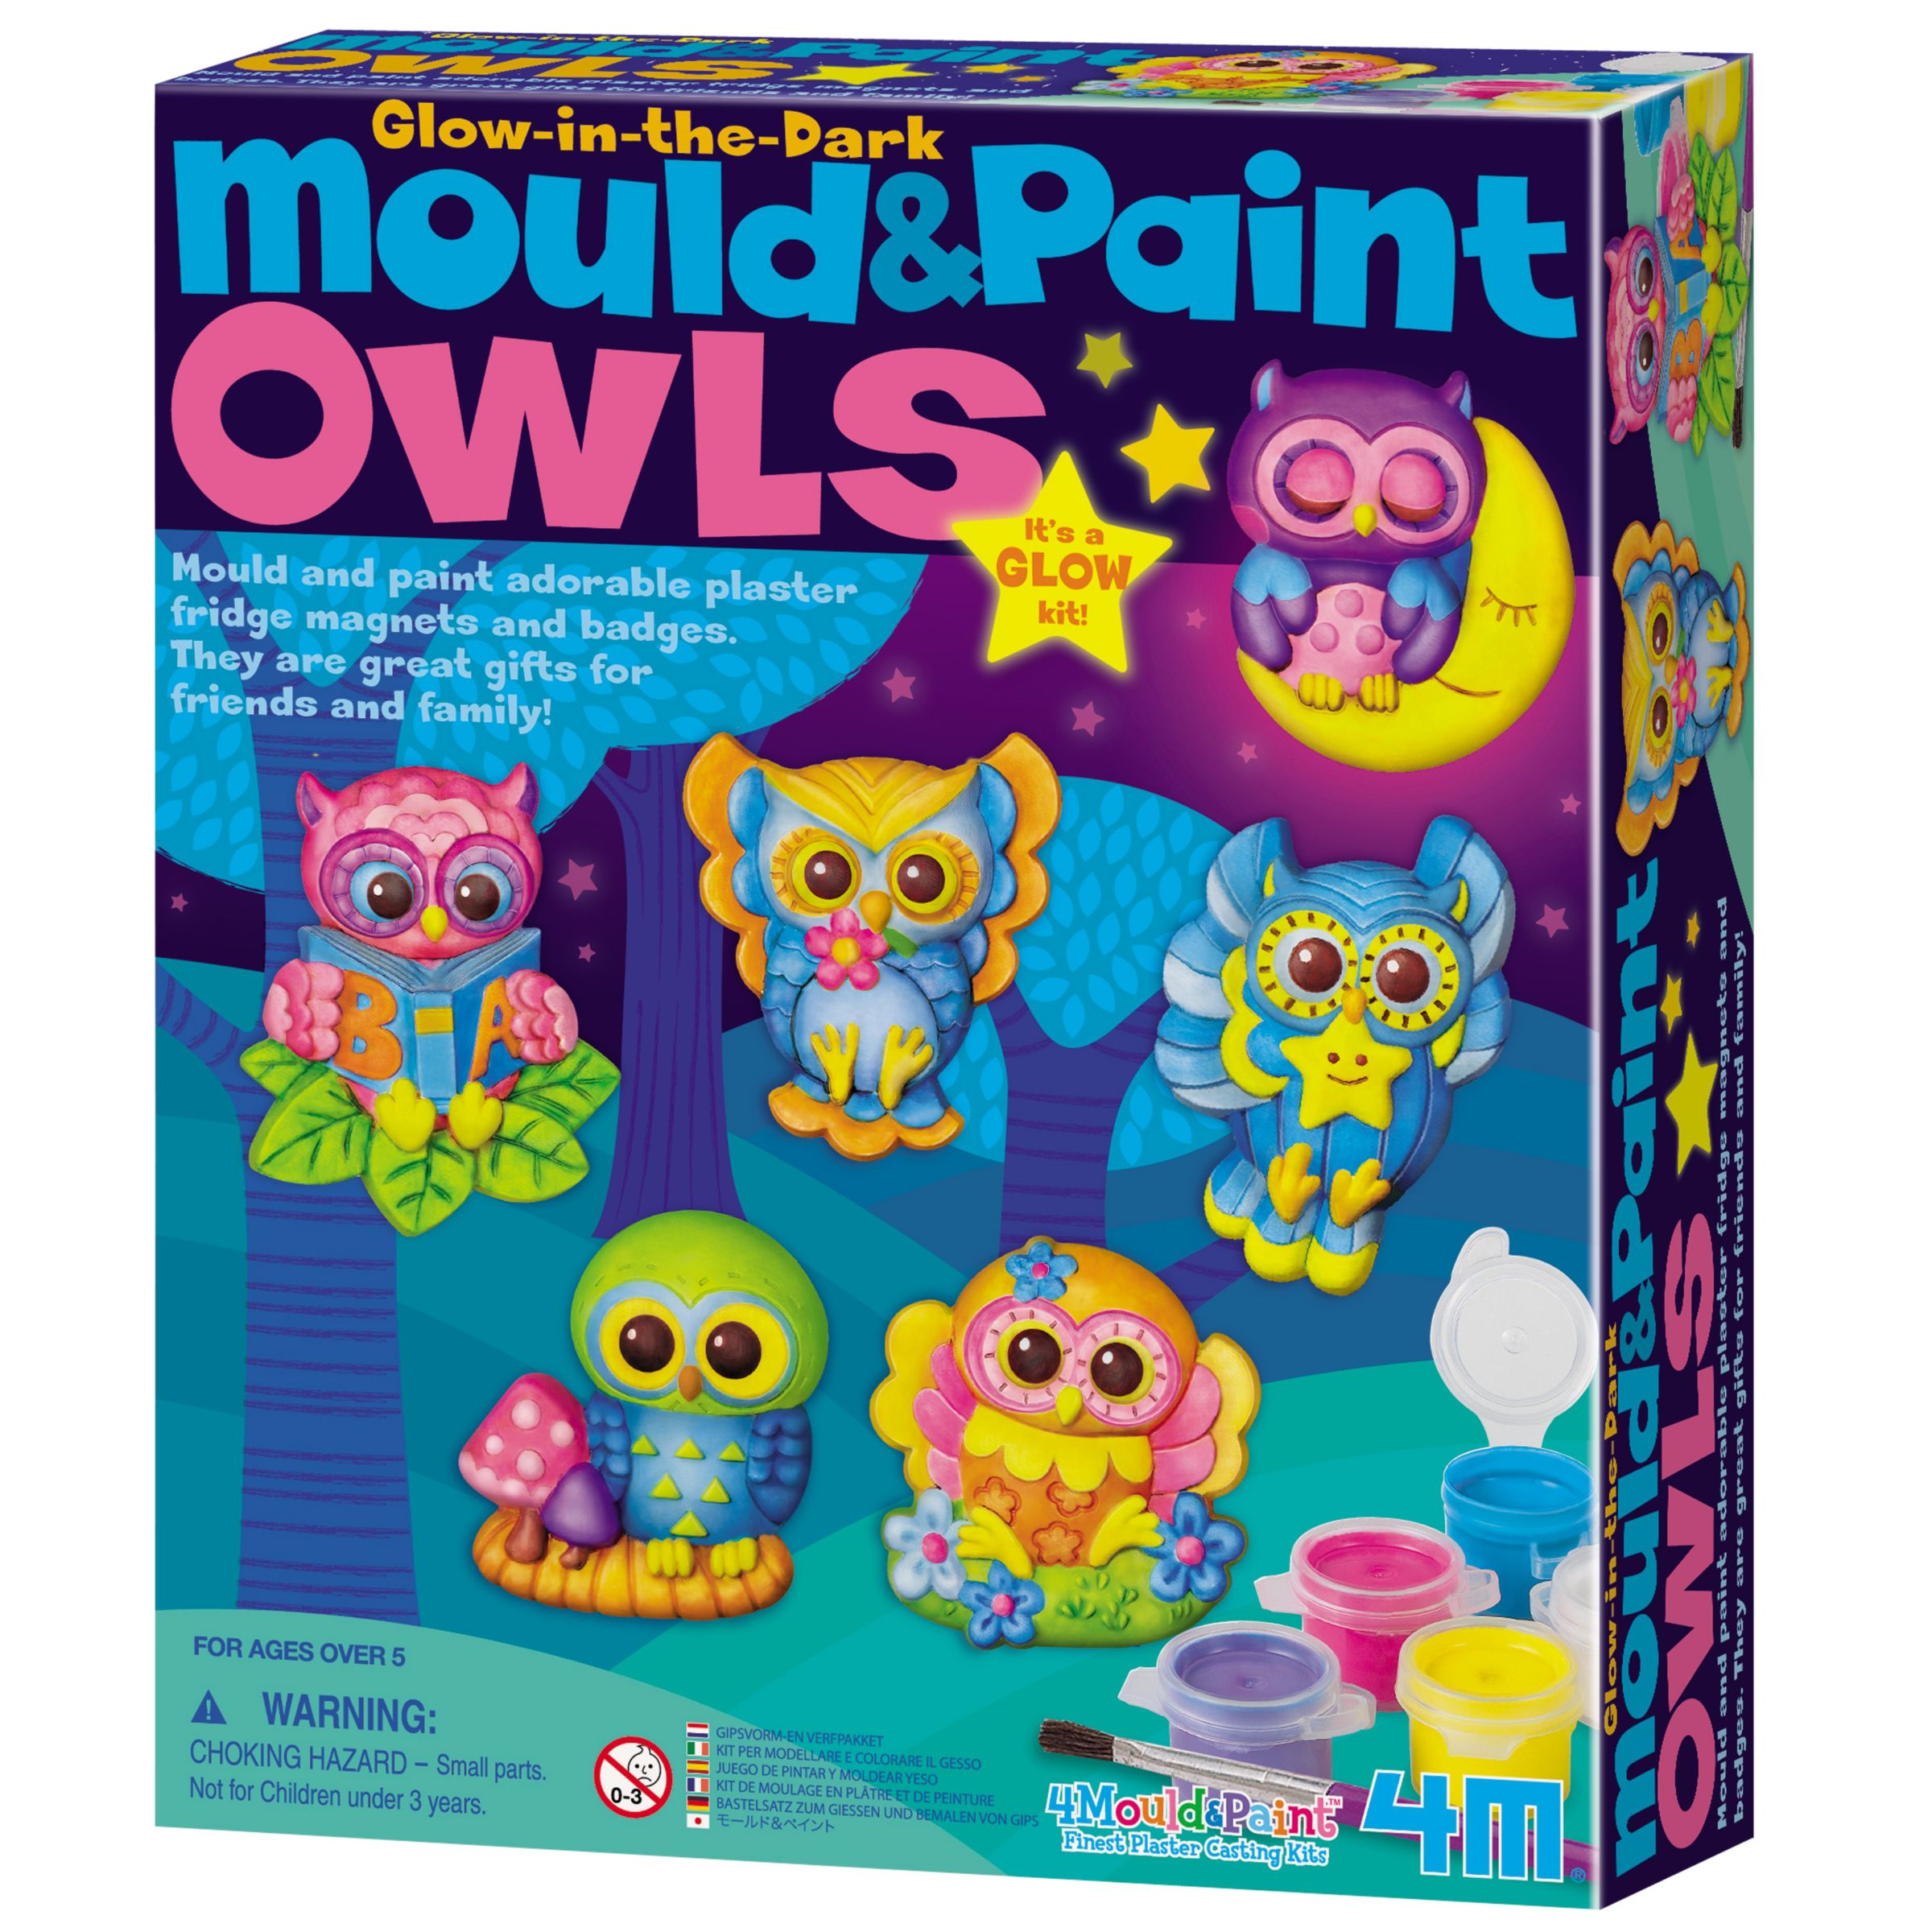 Great Gizmos Mould & Paint Glow in the Dark Owls Kit